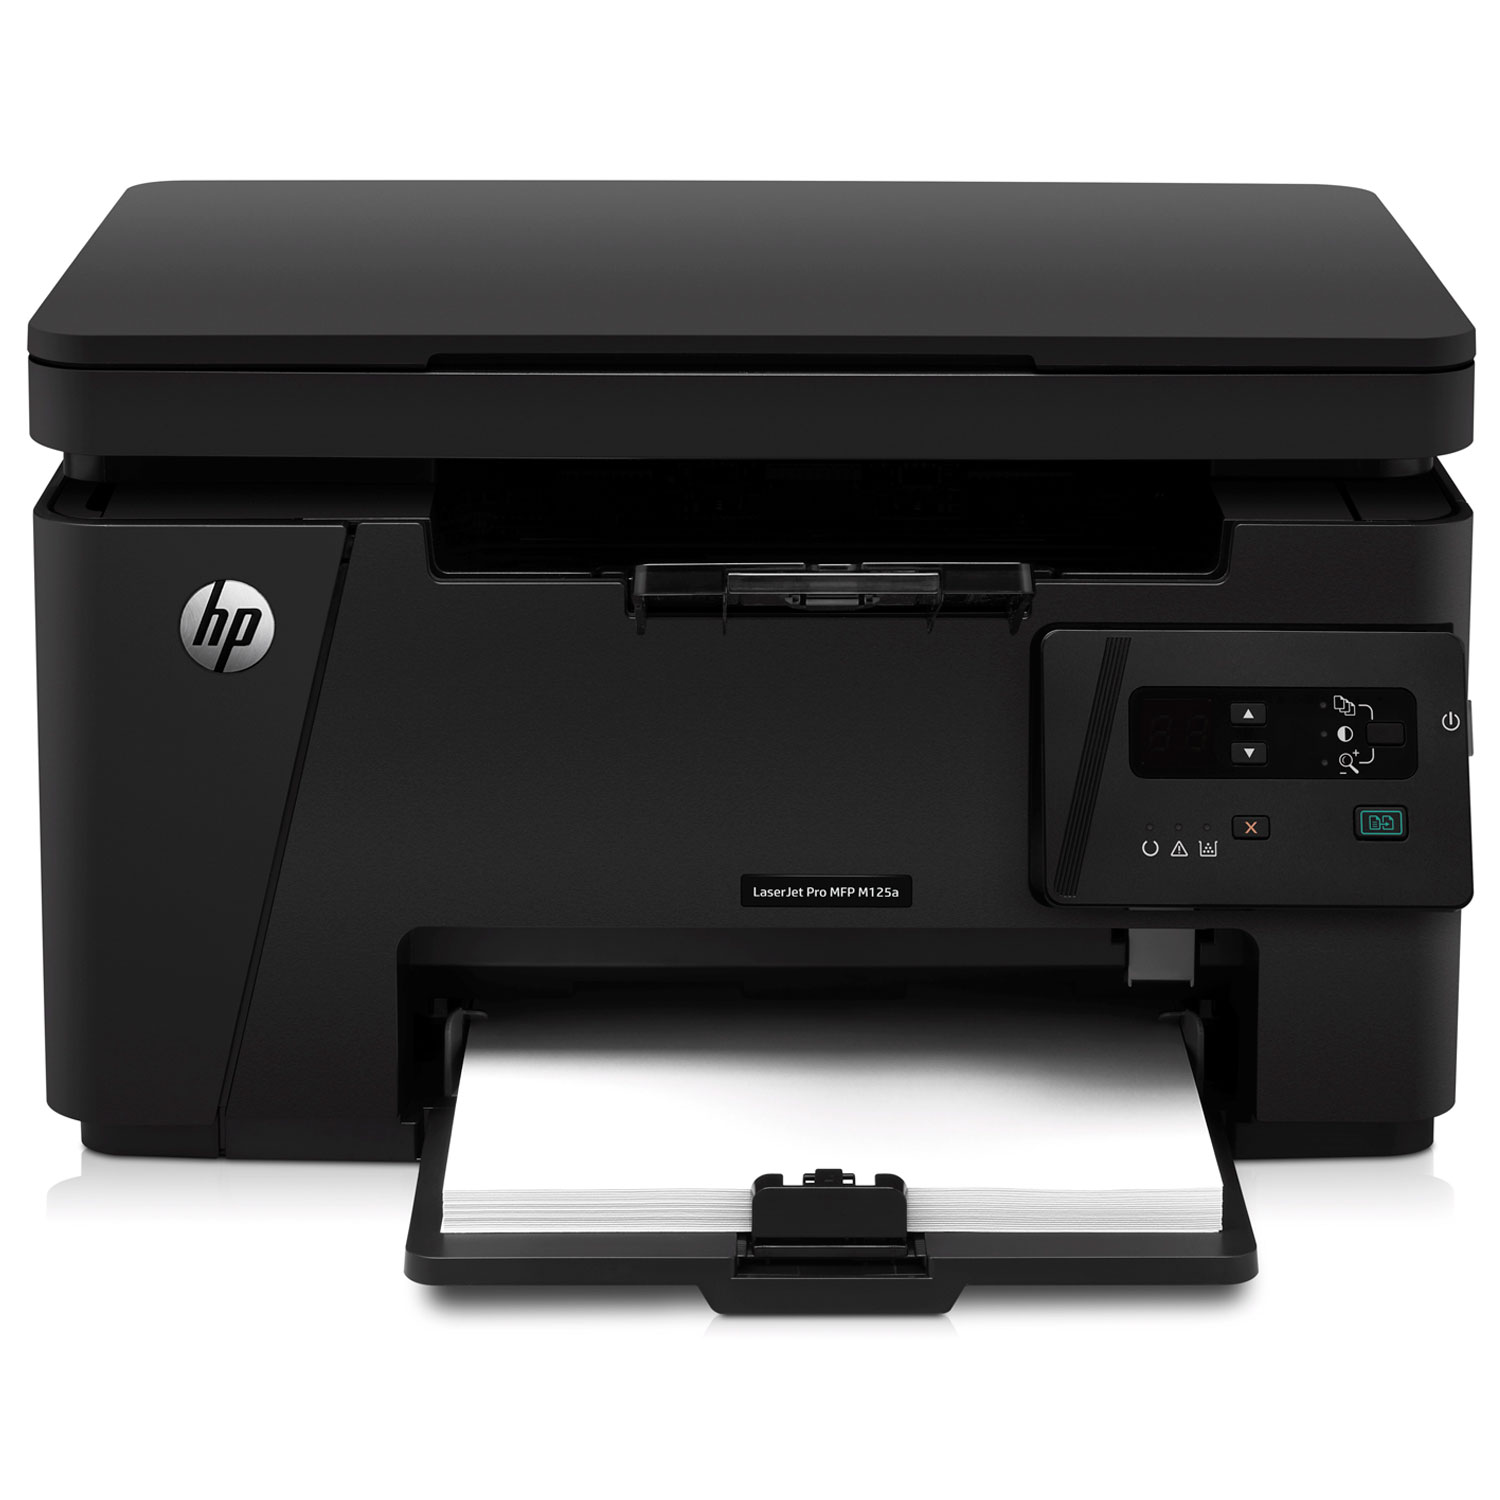 hp laserjet pro mfp m125a imprimante multifonction hp sur. Black Bedroom Furniture Sets. Home Design Ideas